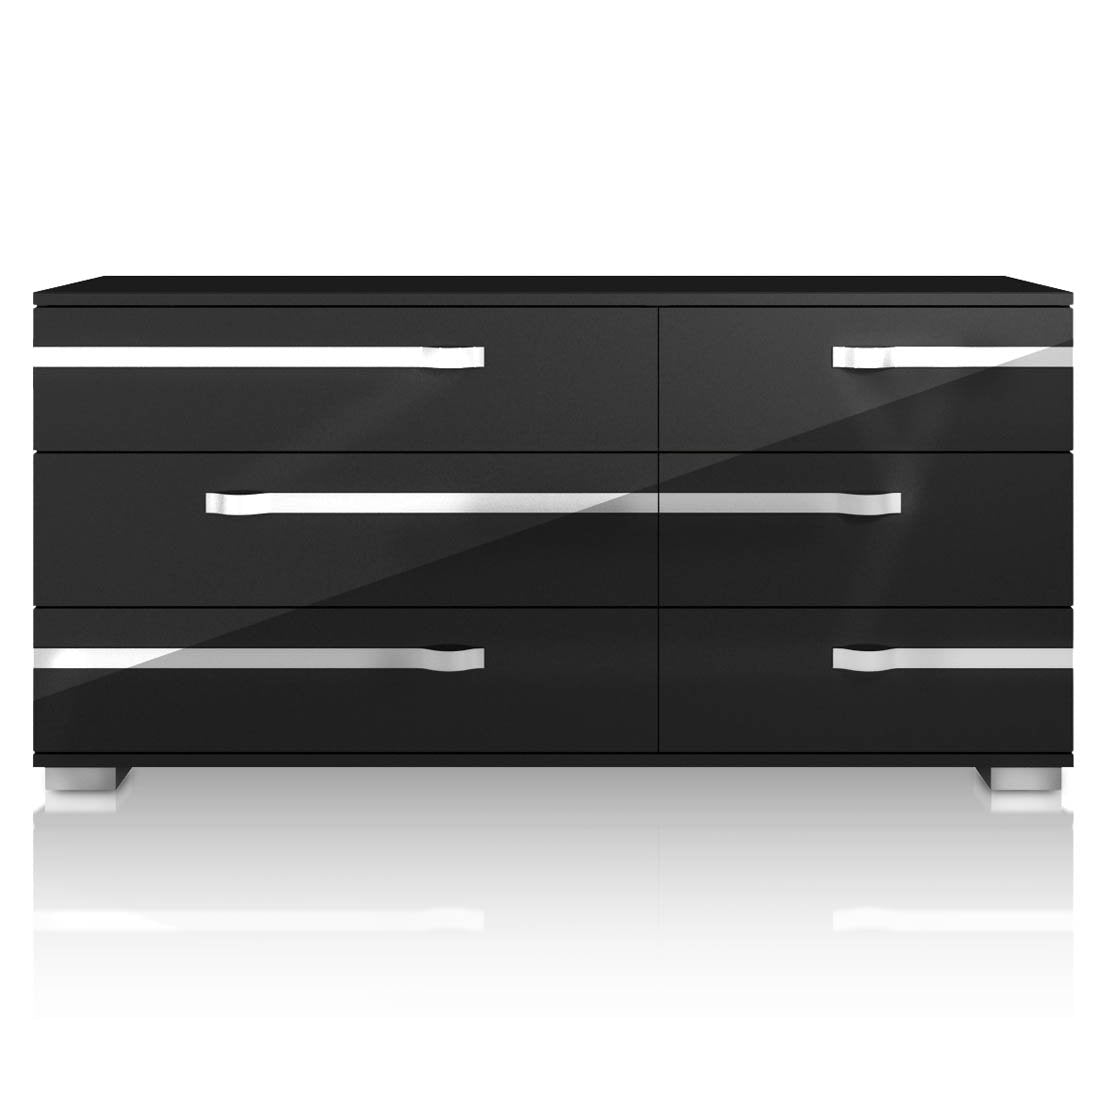 Lustro Double Dresser in Black High Gloss Chrome Foil Trim